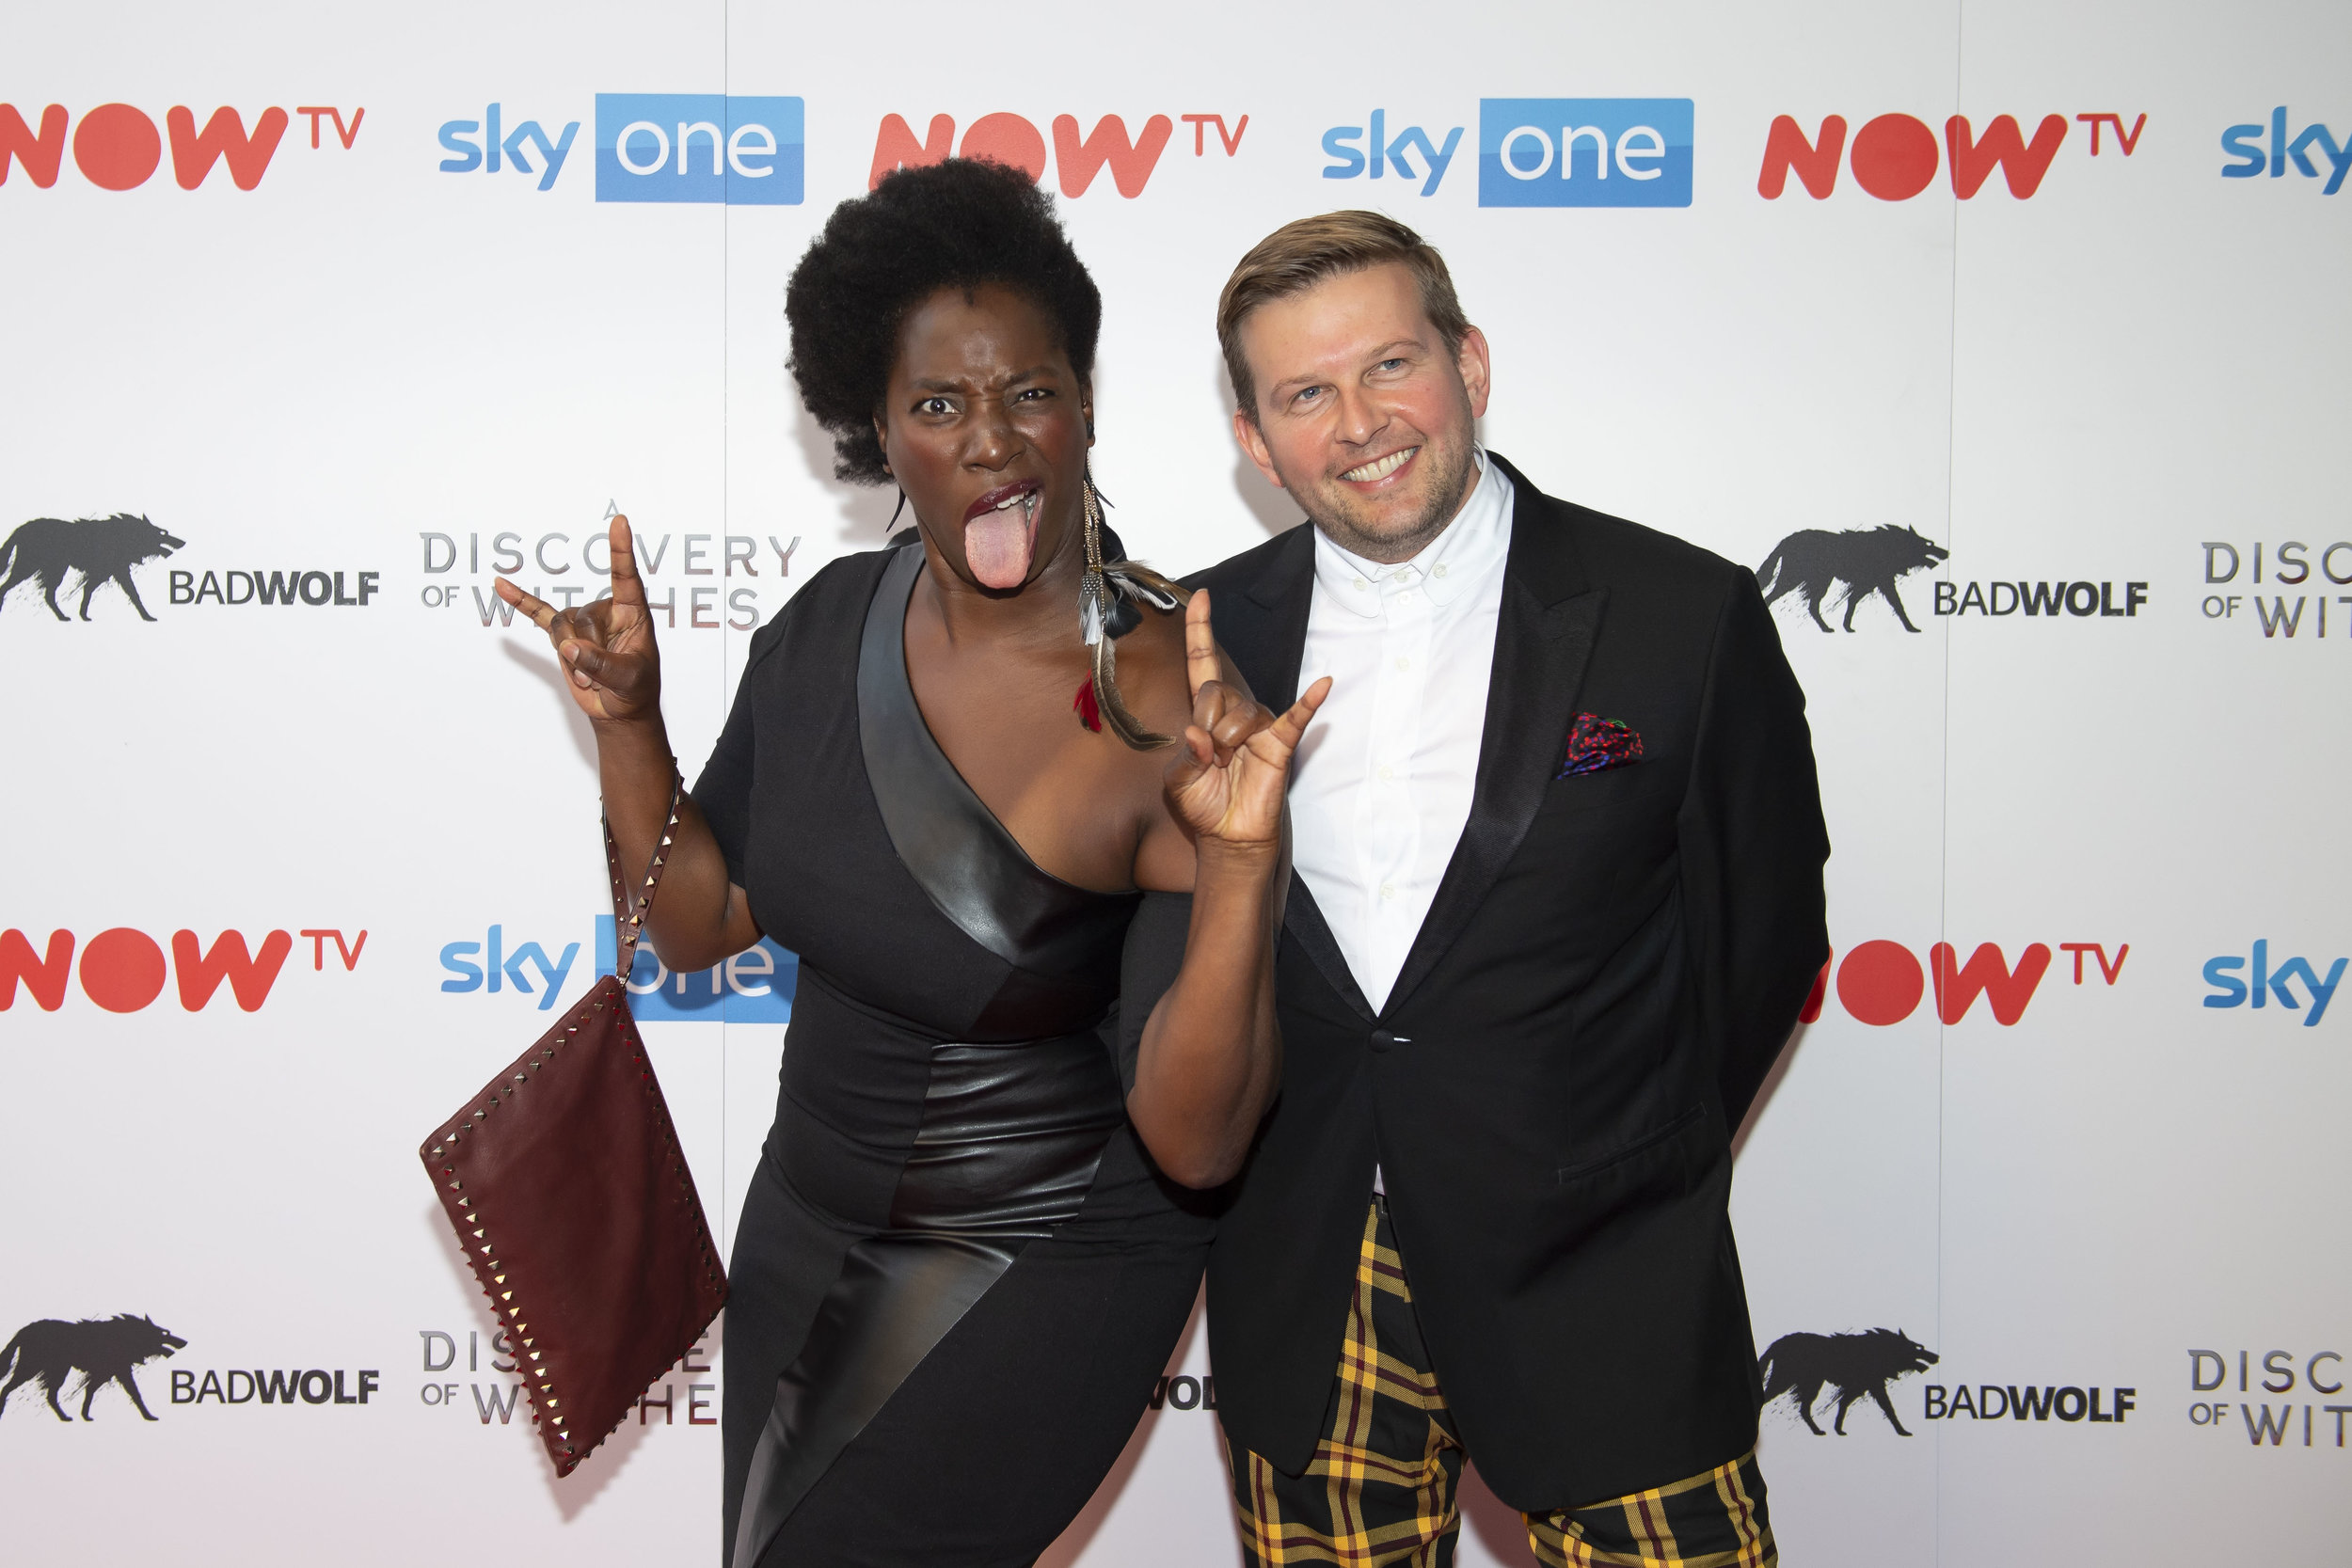 CARDIFF, WALES - SEPTEMBER 05: Tanya Moodie and Greg McHugh attend the UK Premiere of 'A Discovery Of Witches' at Cineworld on September 5, 2018 in Cardiff, Wales. (Photo by Matthew Horwood/Getty Images)